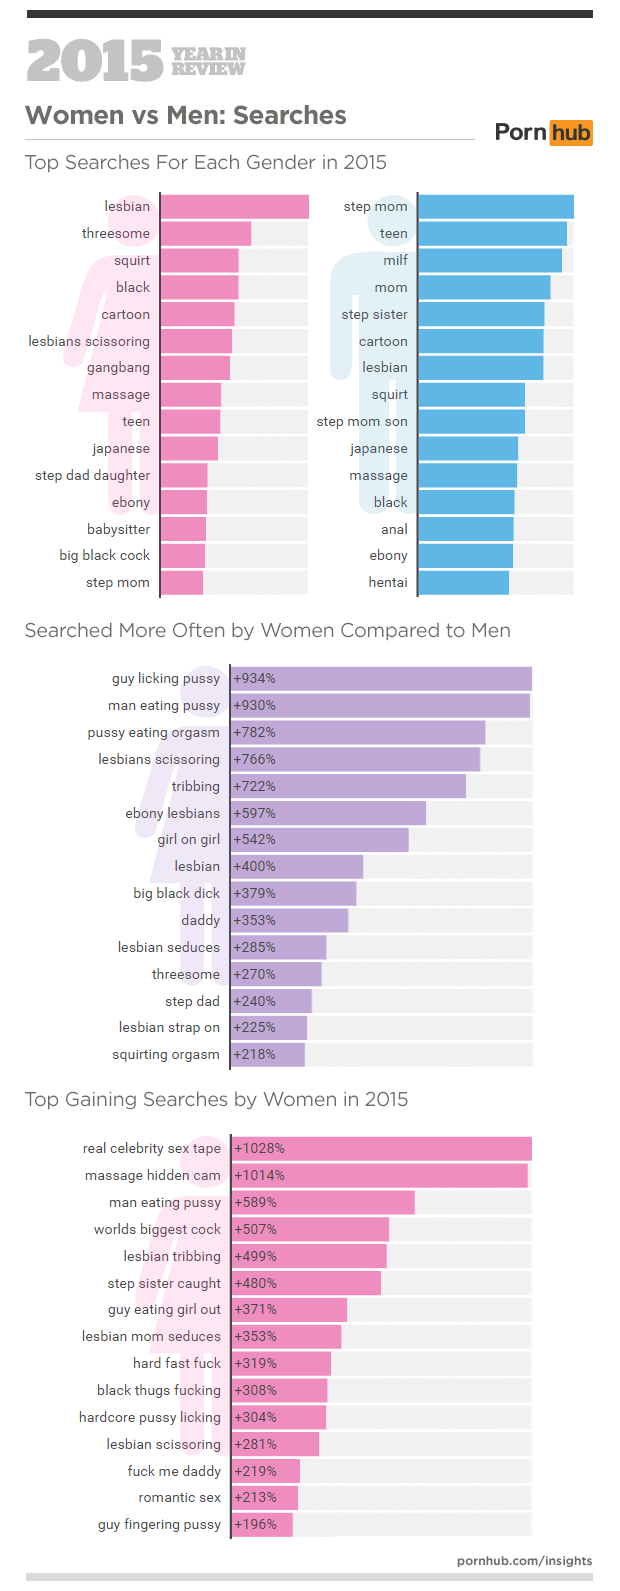 4-pornhub-insights-2015-year-in-review-female-male-searches